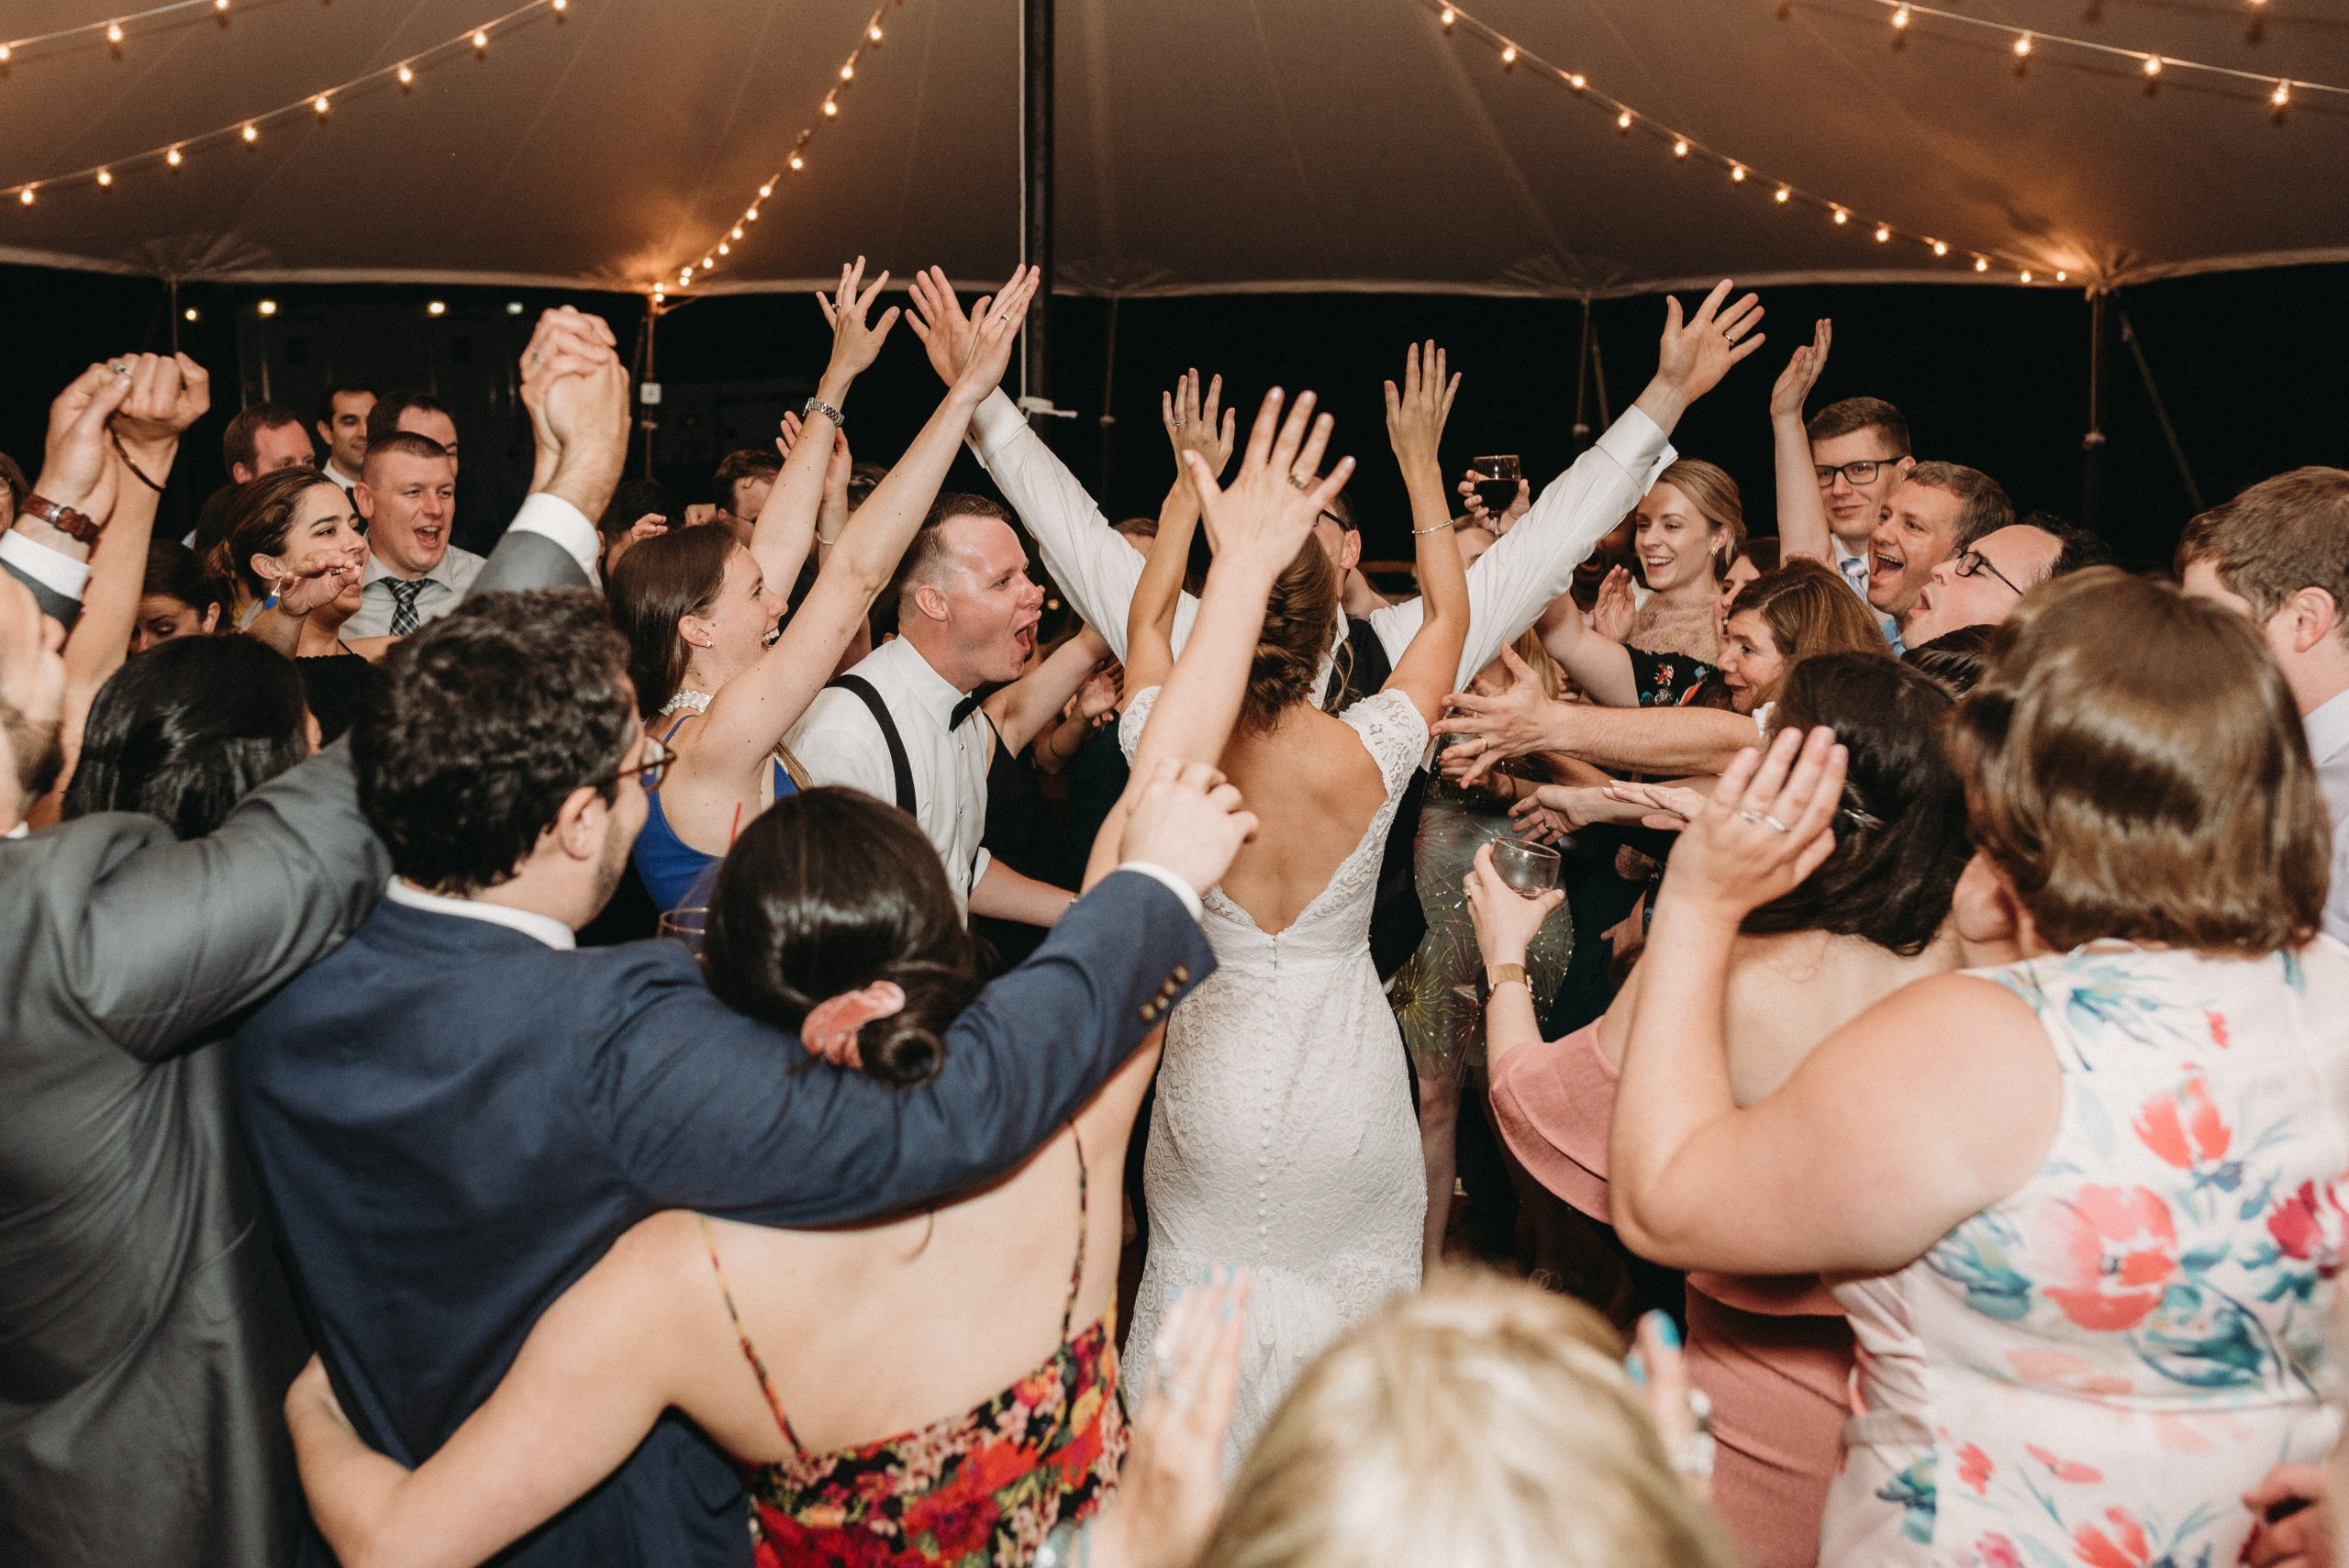 Tent wedding dance floor